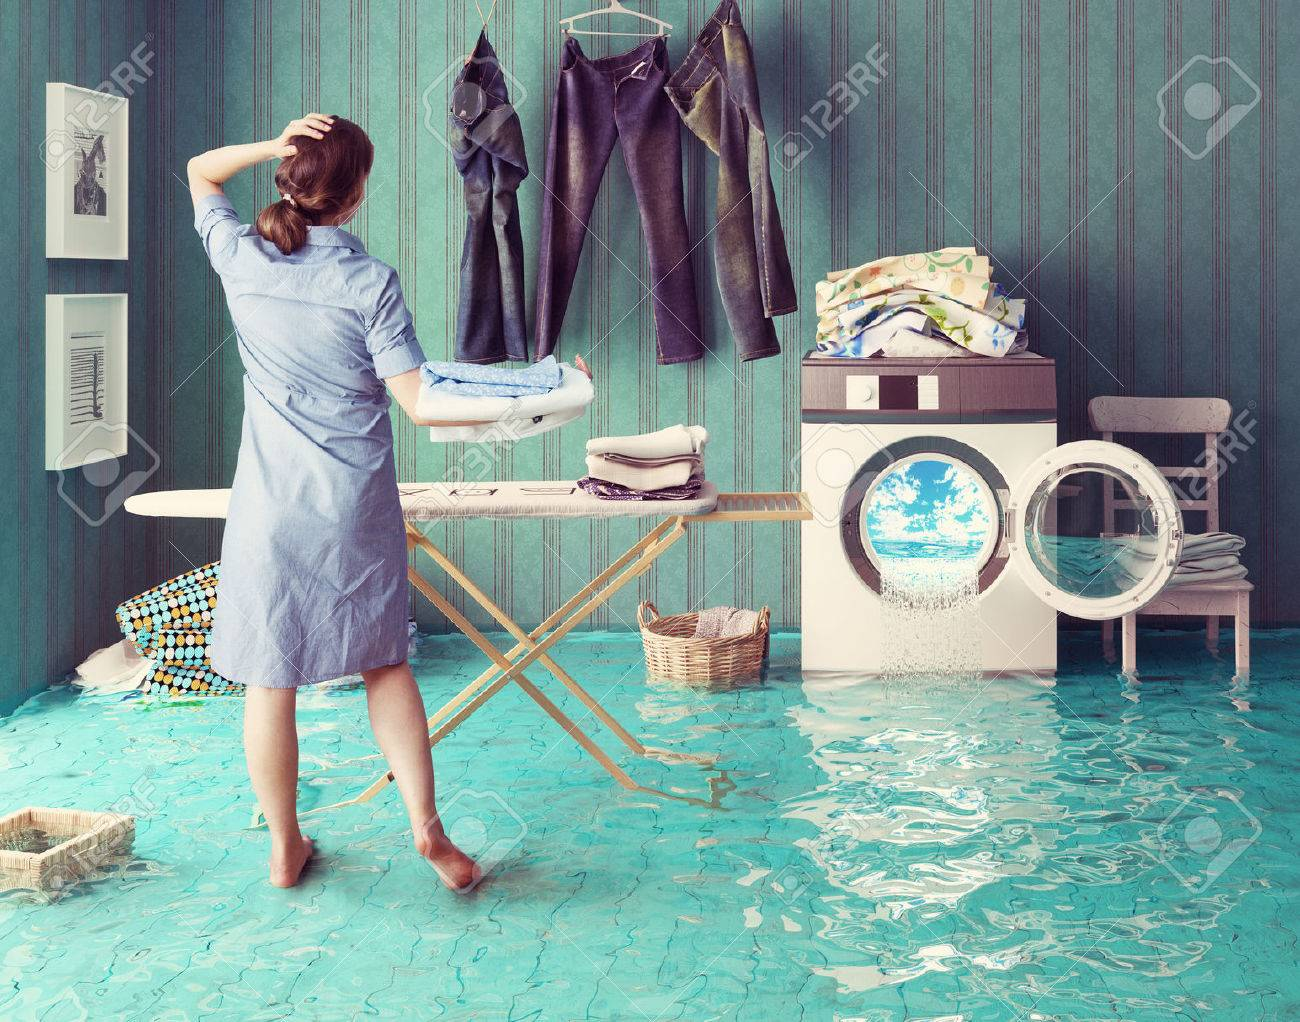 Housewife dreams. Creative concept. Photo combination Standard-Bild - 44926005